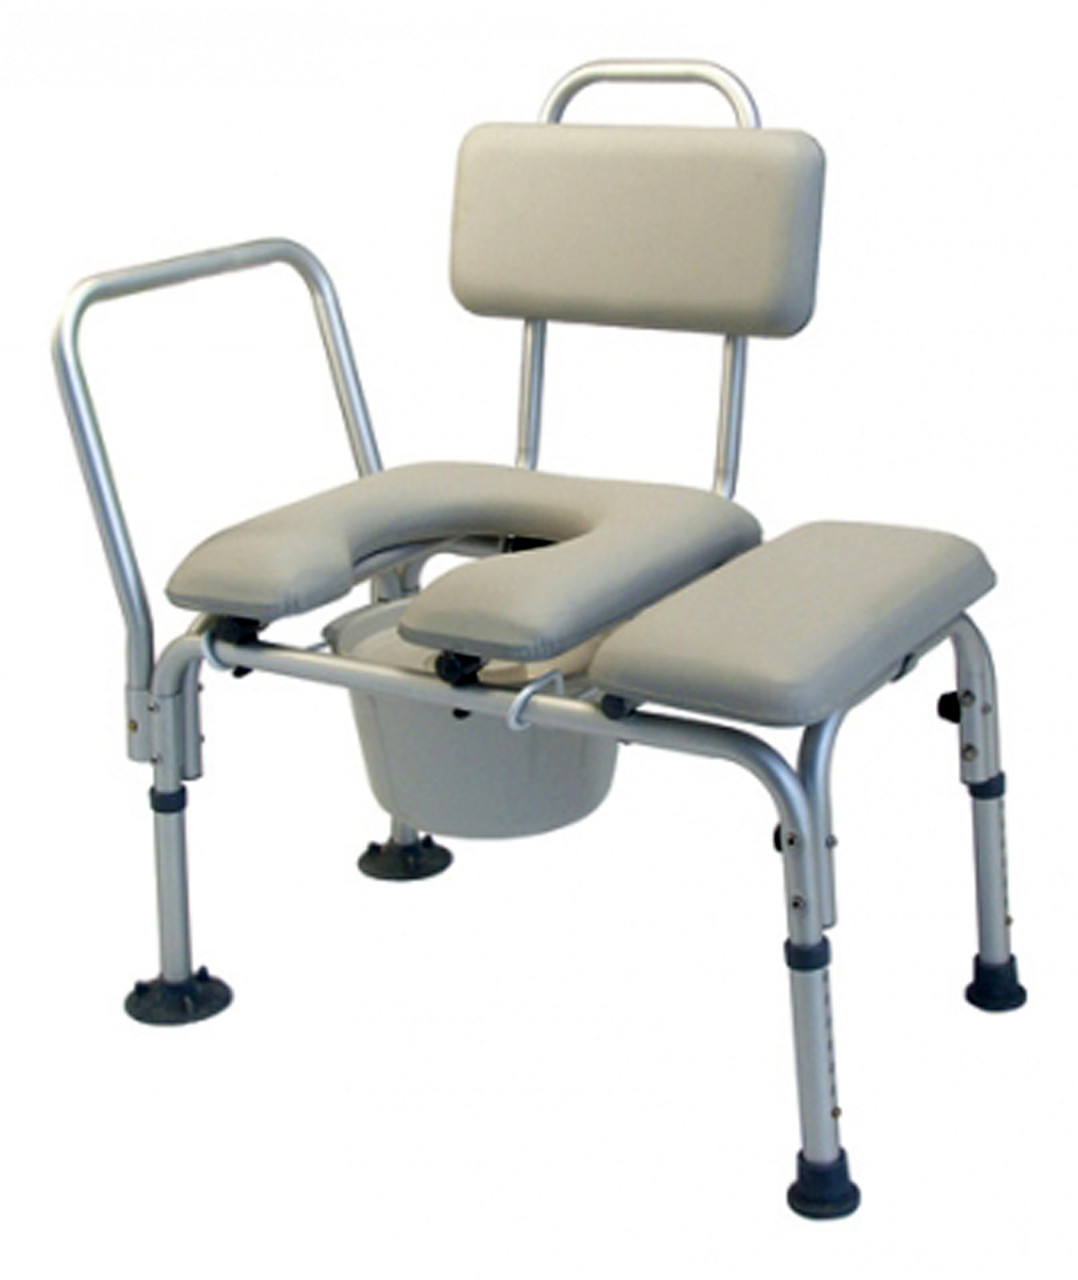 Graham Field Transfer Bench Bath Seat Commode with Swing Arm for Safety